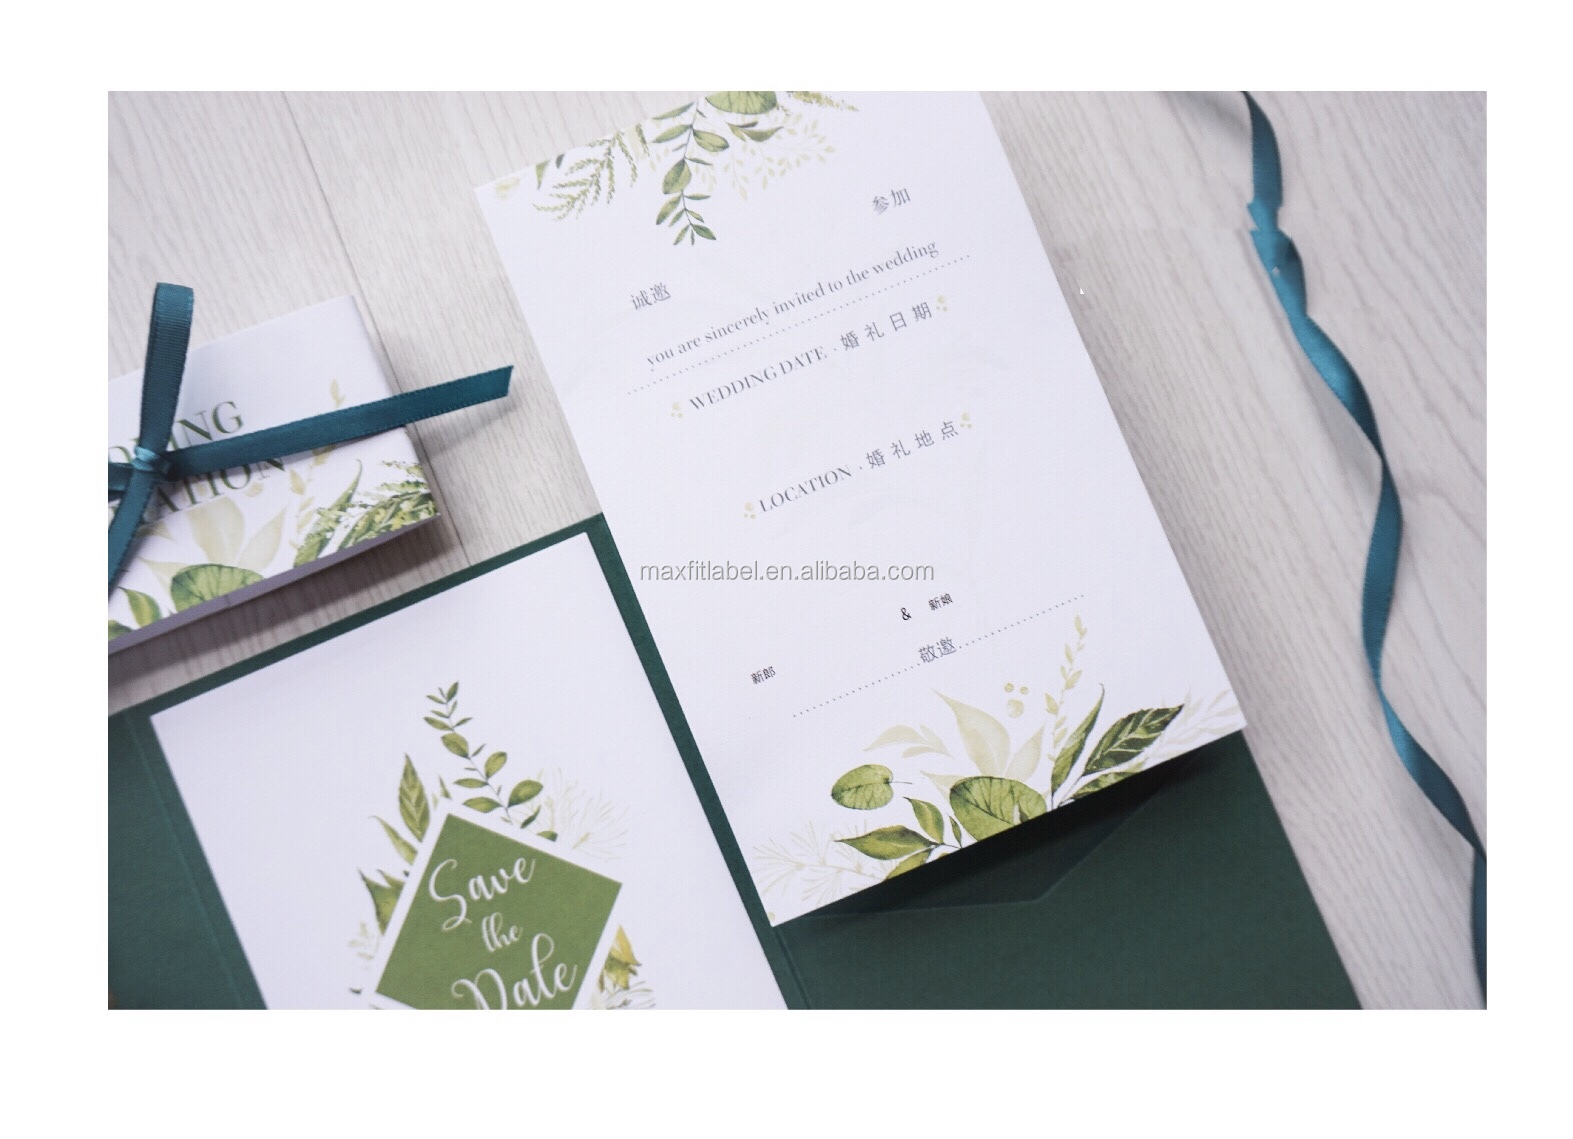 Guaranteed custom quality wedding invitation card design